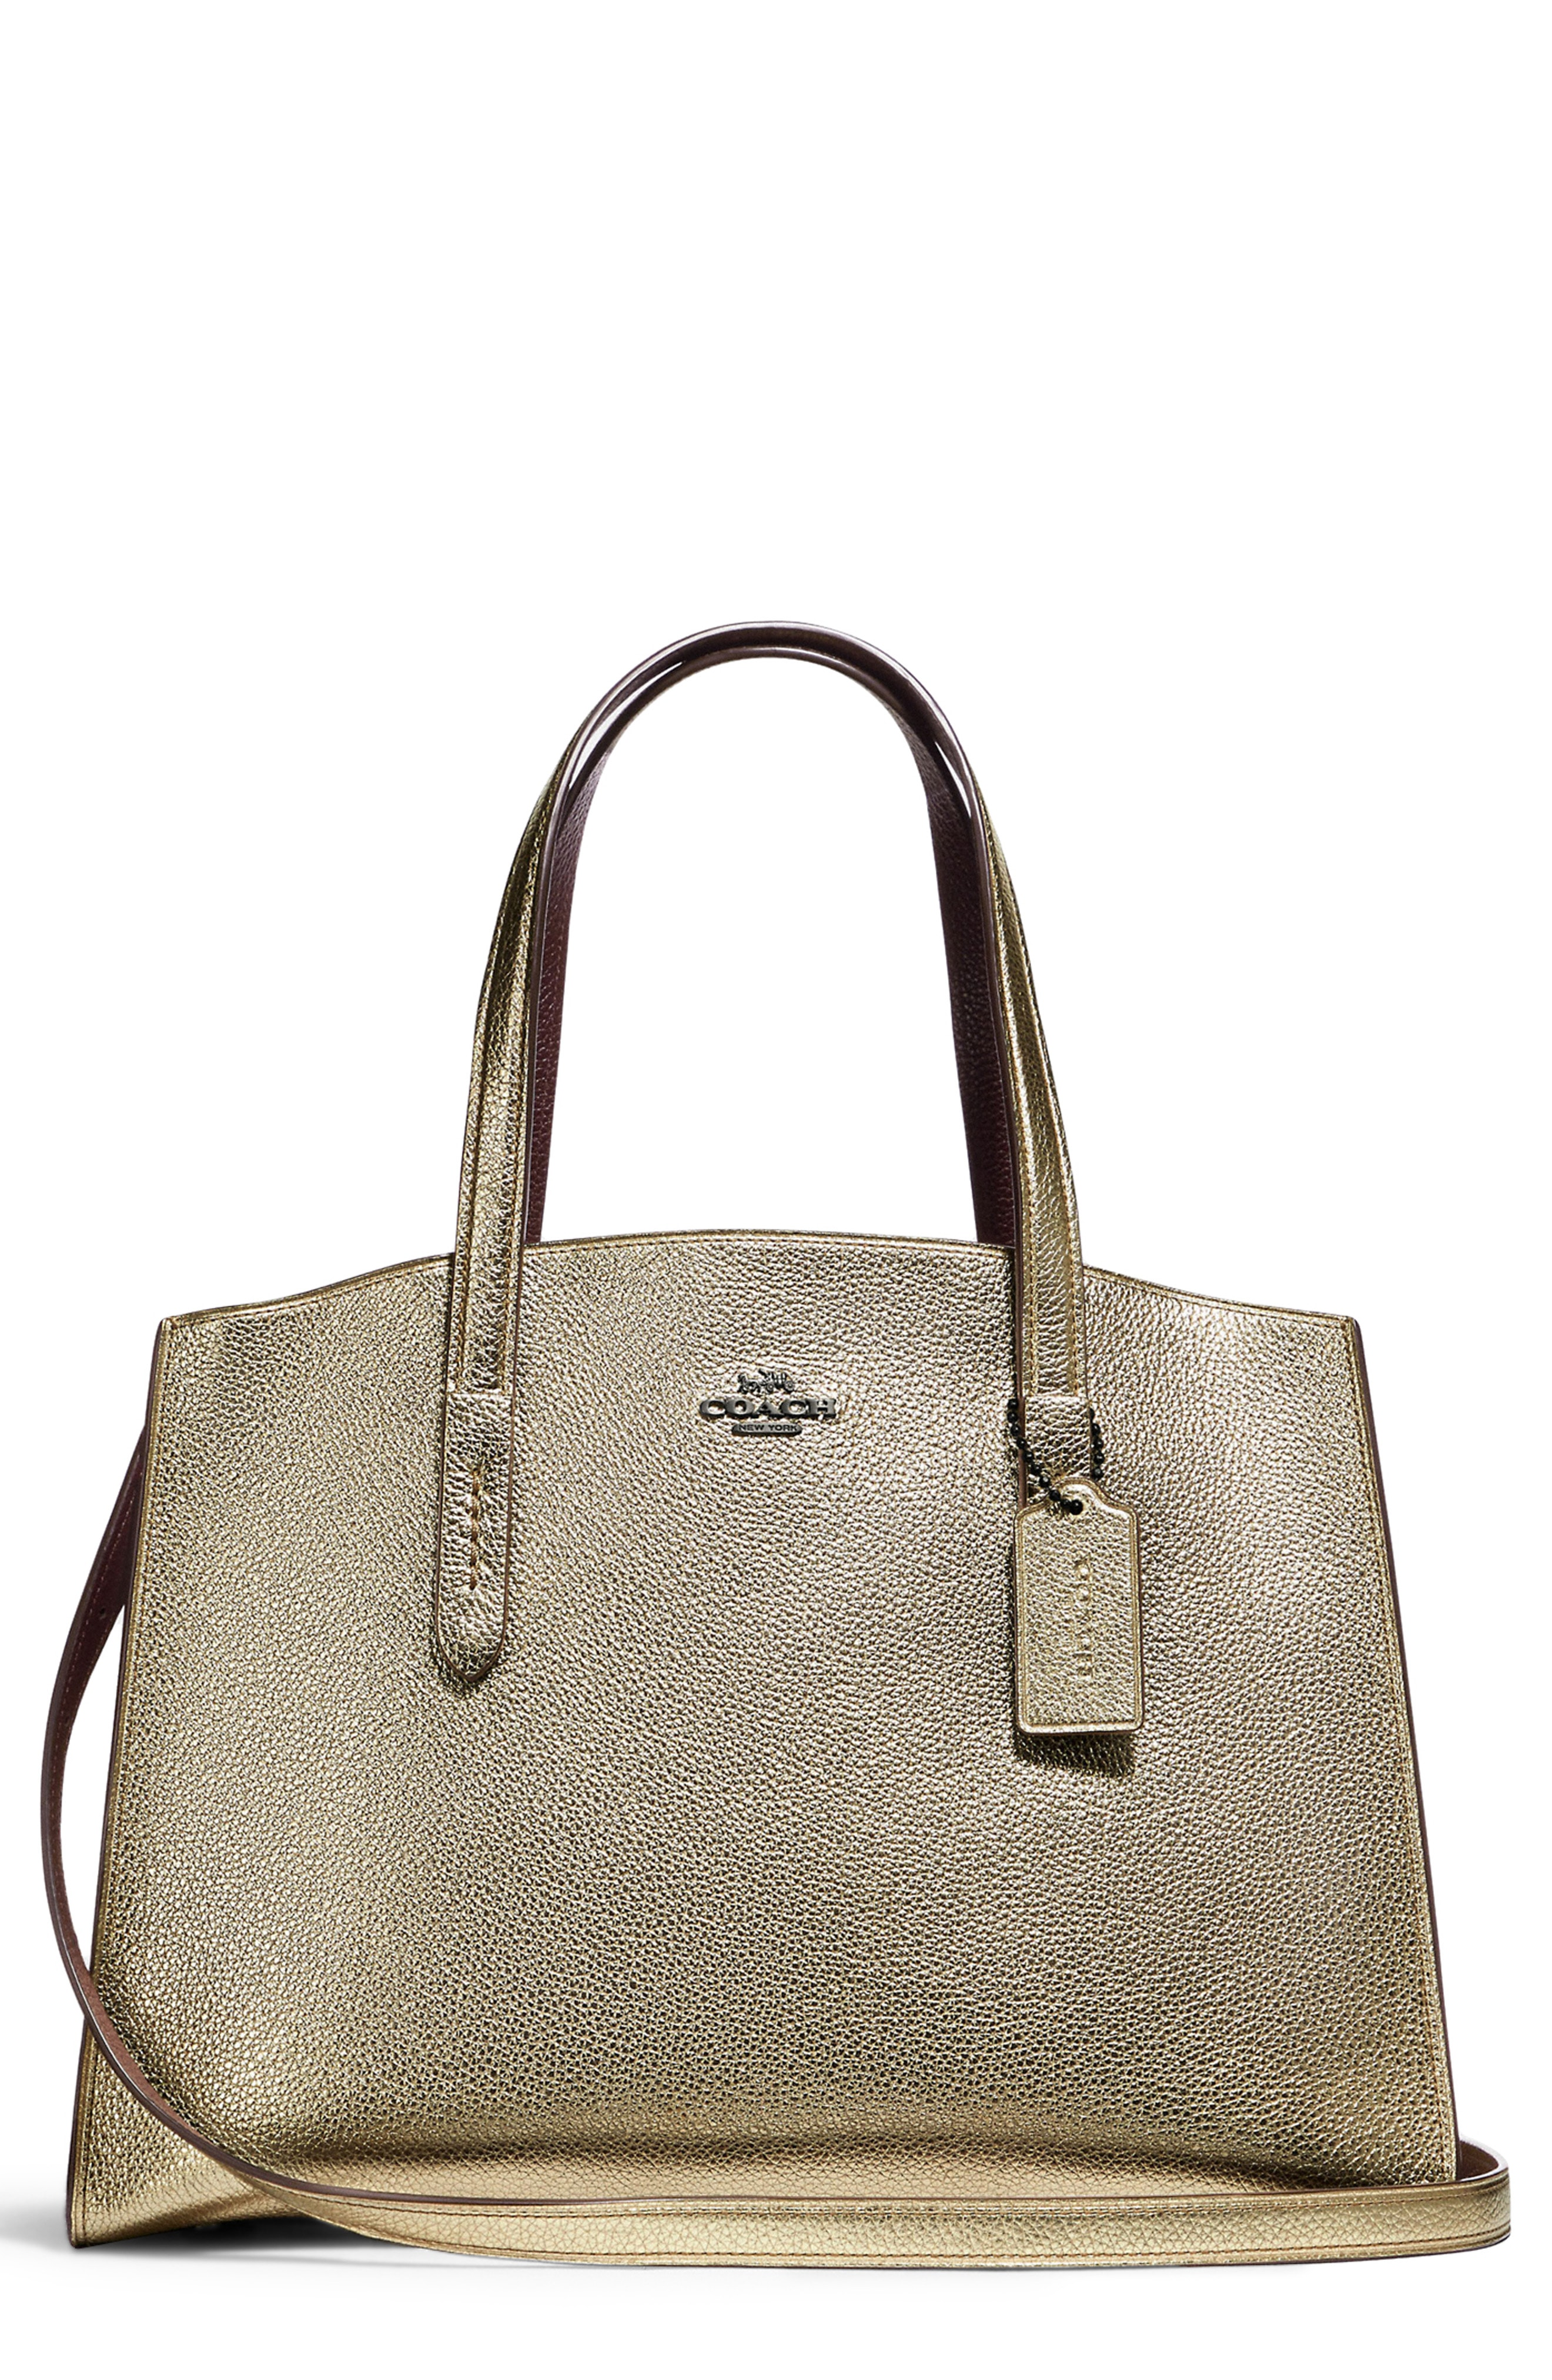 COACH Charlie Metallic Leather Tote